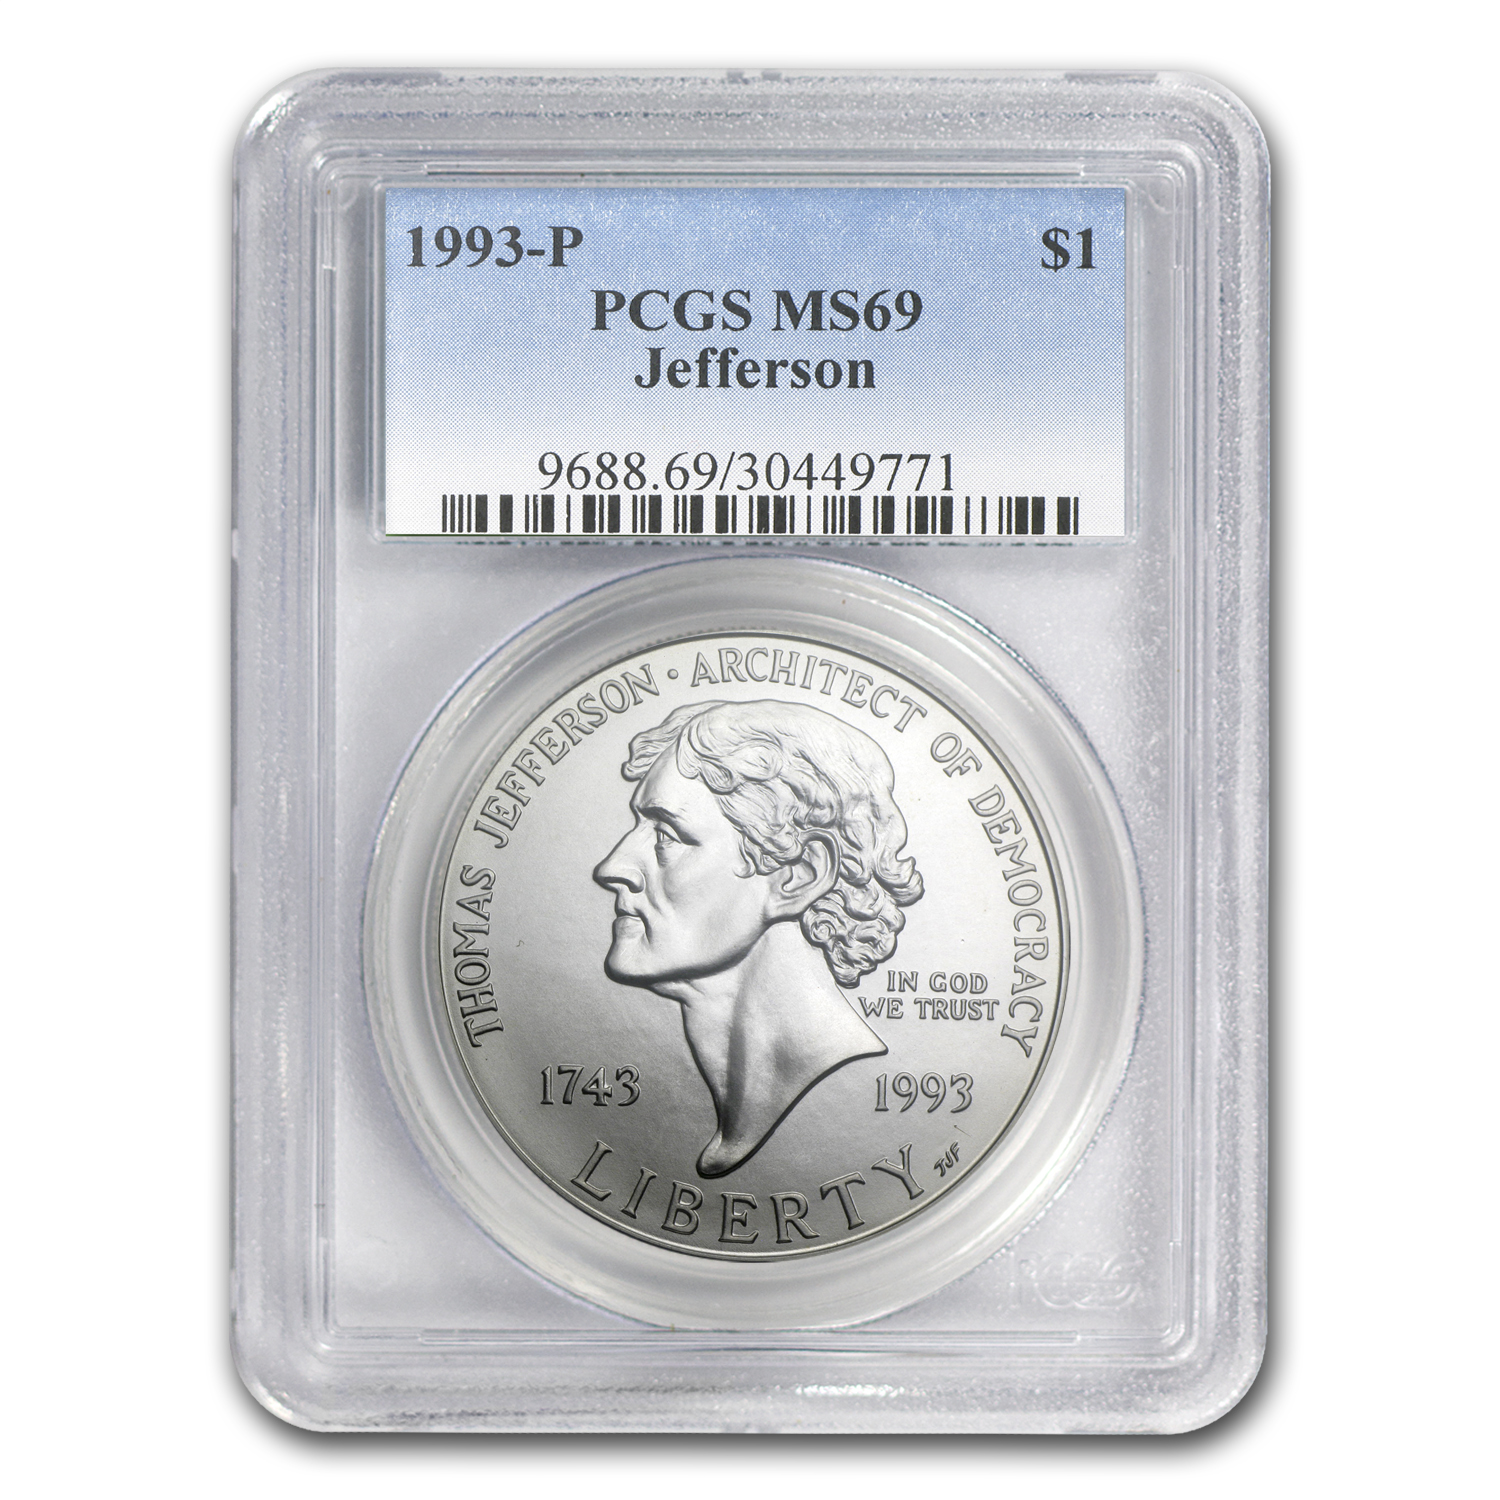 1993-P Jefferson 250th Anniv $1 Silver Commem MS-69 PCGS